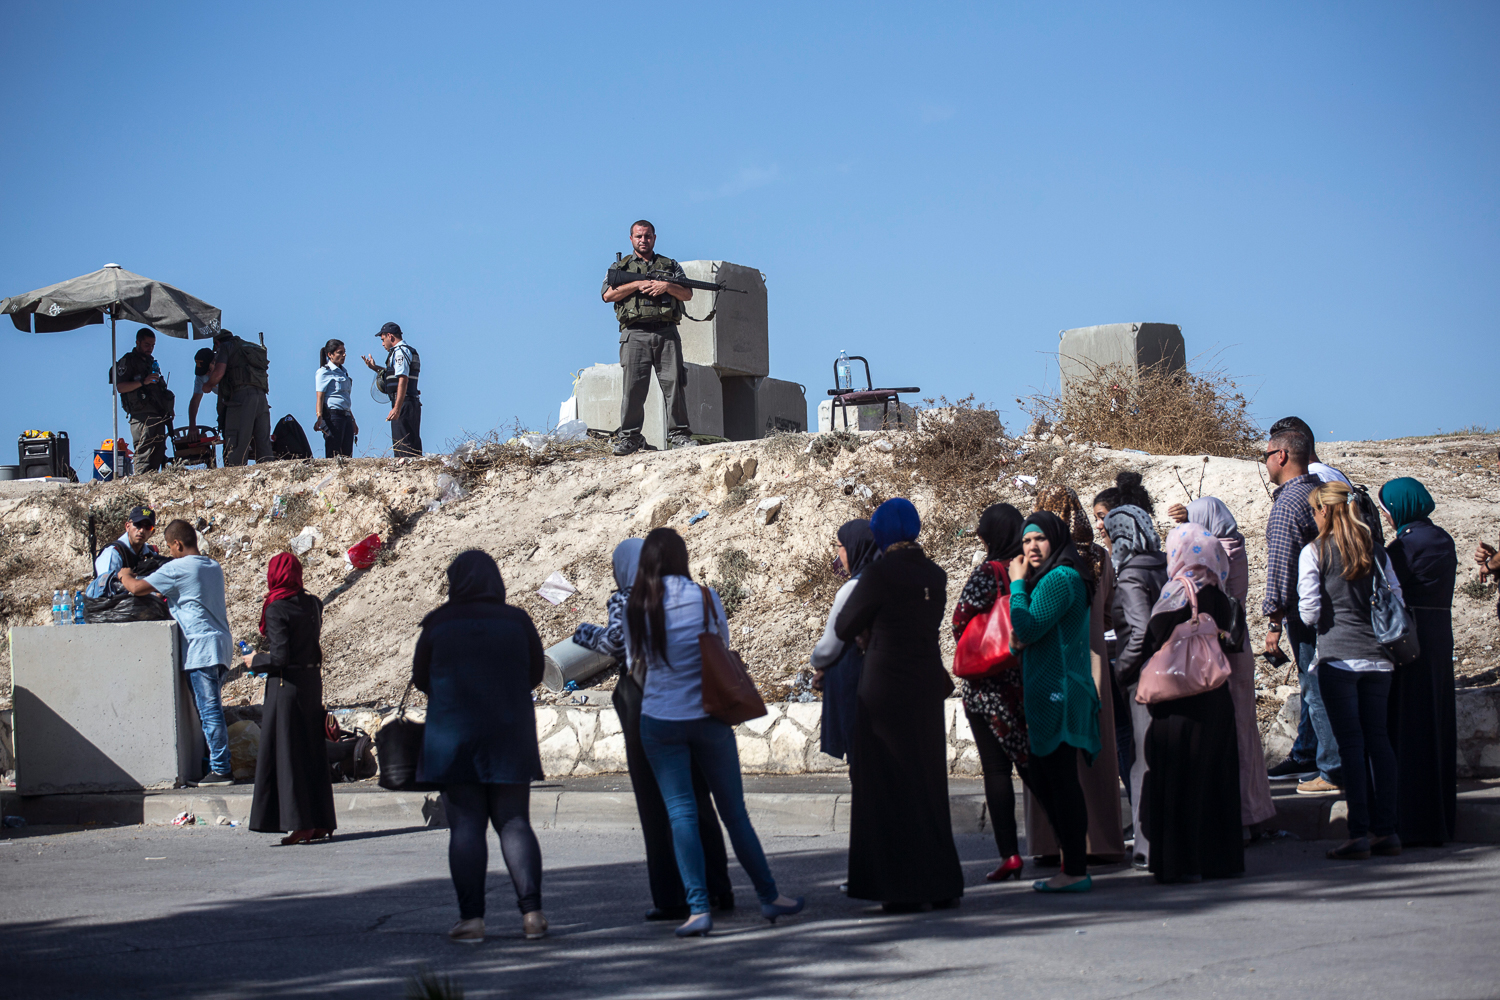 Palestinians wait in line at one of the new checkpoints in al-Issawiya. Several checkpoints have been put in place around the village, making it difficult for residents to move around freely. [Anne Paq/Al Jazeera]